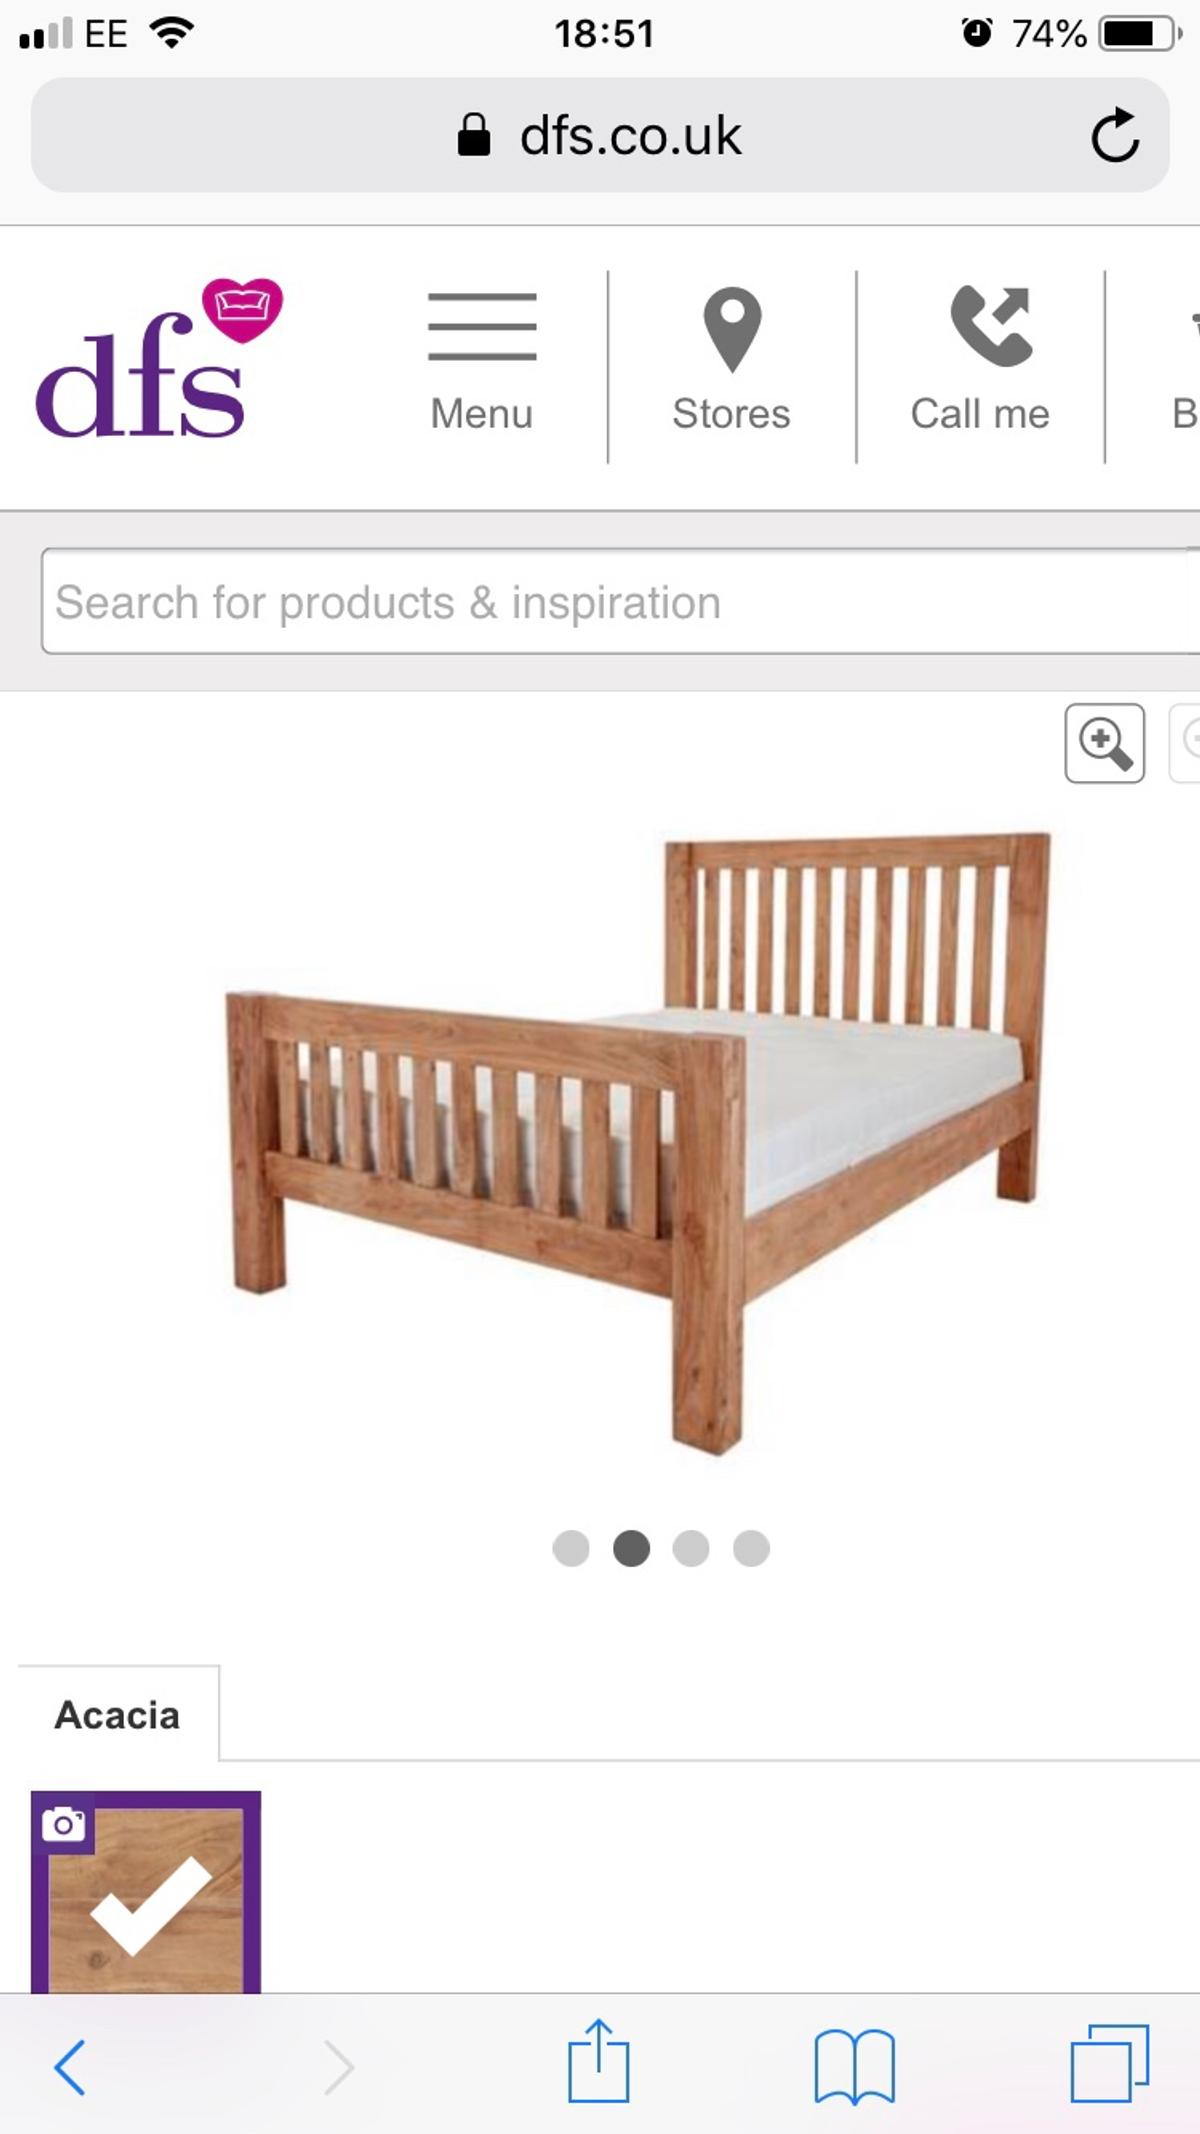 Picture of: Dfs King Size Bed Frame In Cv10 North Warwickshire For 45 00 For Sale Shpock